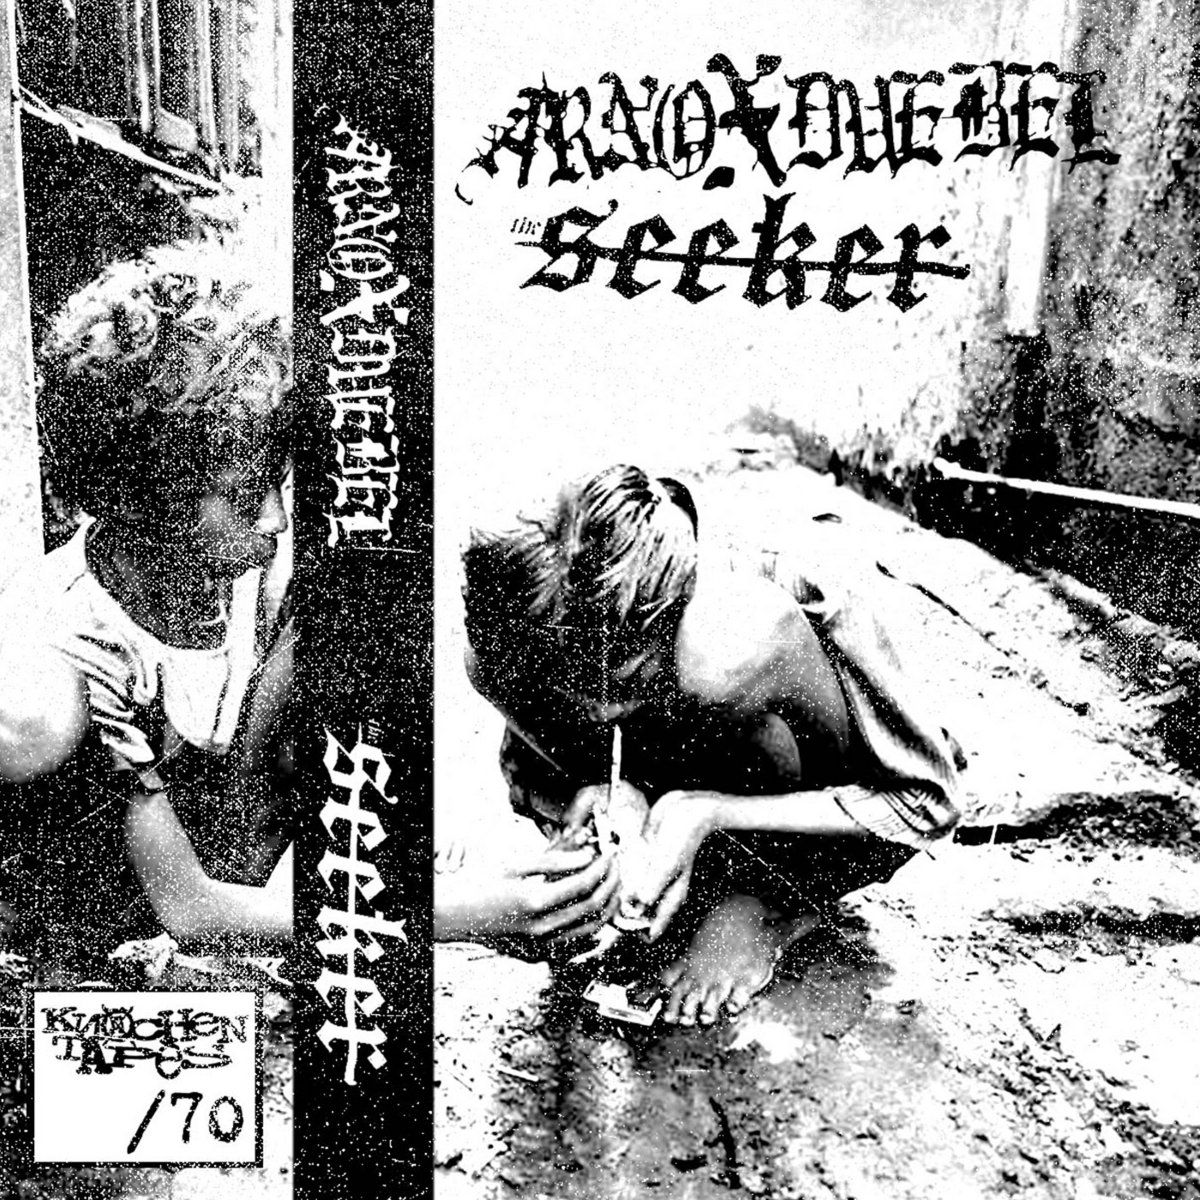 6f18af44c08 Includes unlimited streaming of ARNOXDUEBEL/THE SEEKER - split via the free  Bandcamp app, plus high-quality download in MP3, FLAC and more.